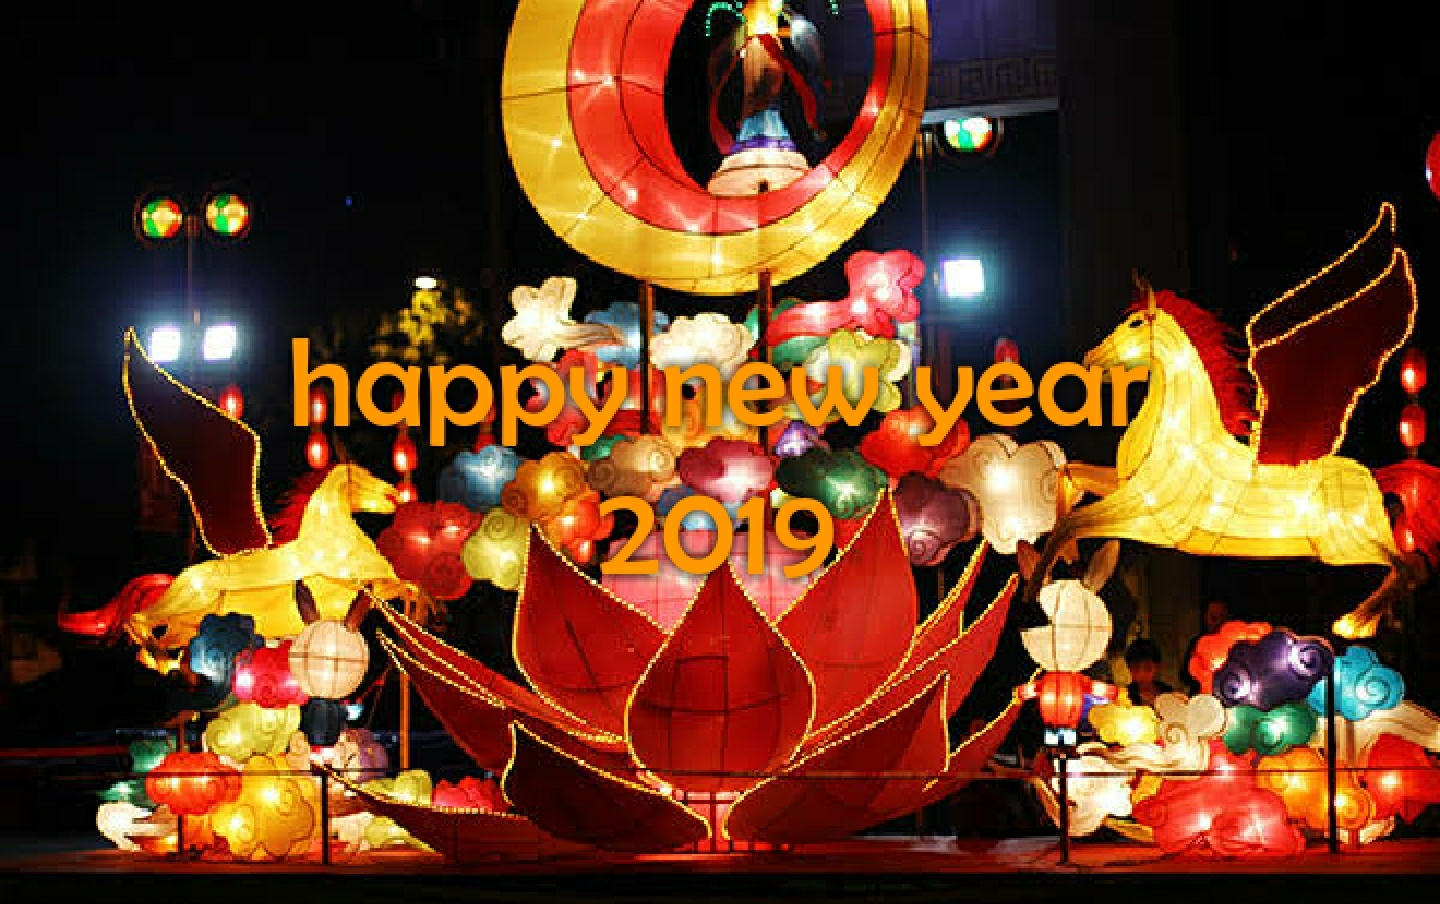 Download happy new year 2019 stickers, wallpapers, images and.